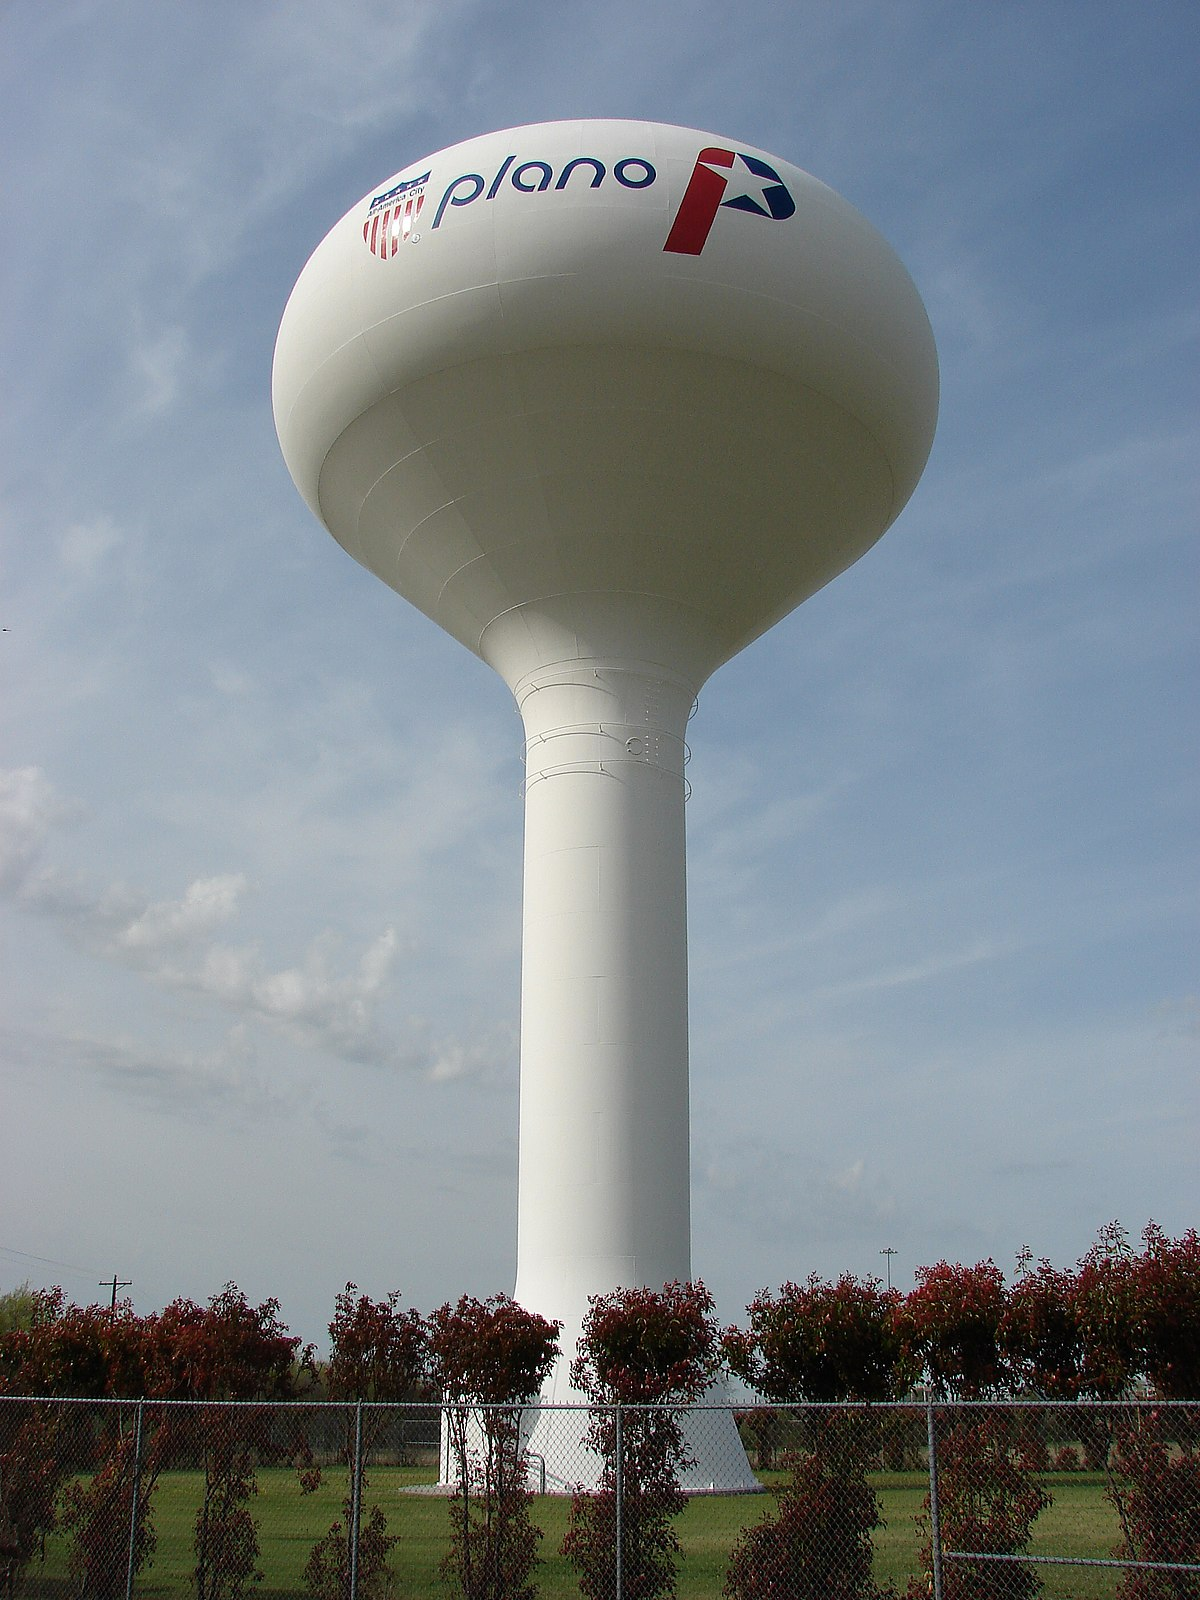 https://upload.wikimedia.org/wikipedia/commons/thumb/d/de/WaterTower-Plano-7600.jpg/1200px-WaterTower-Plano-7600.jpg